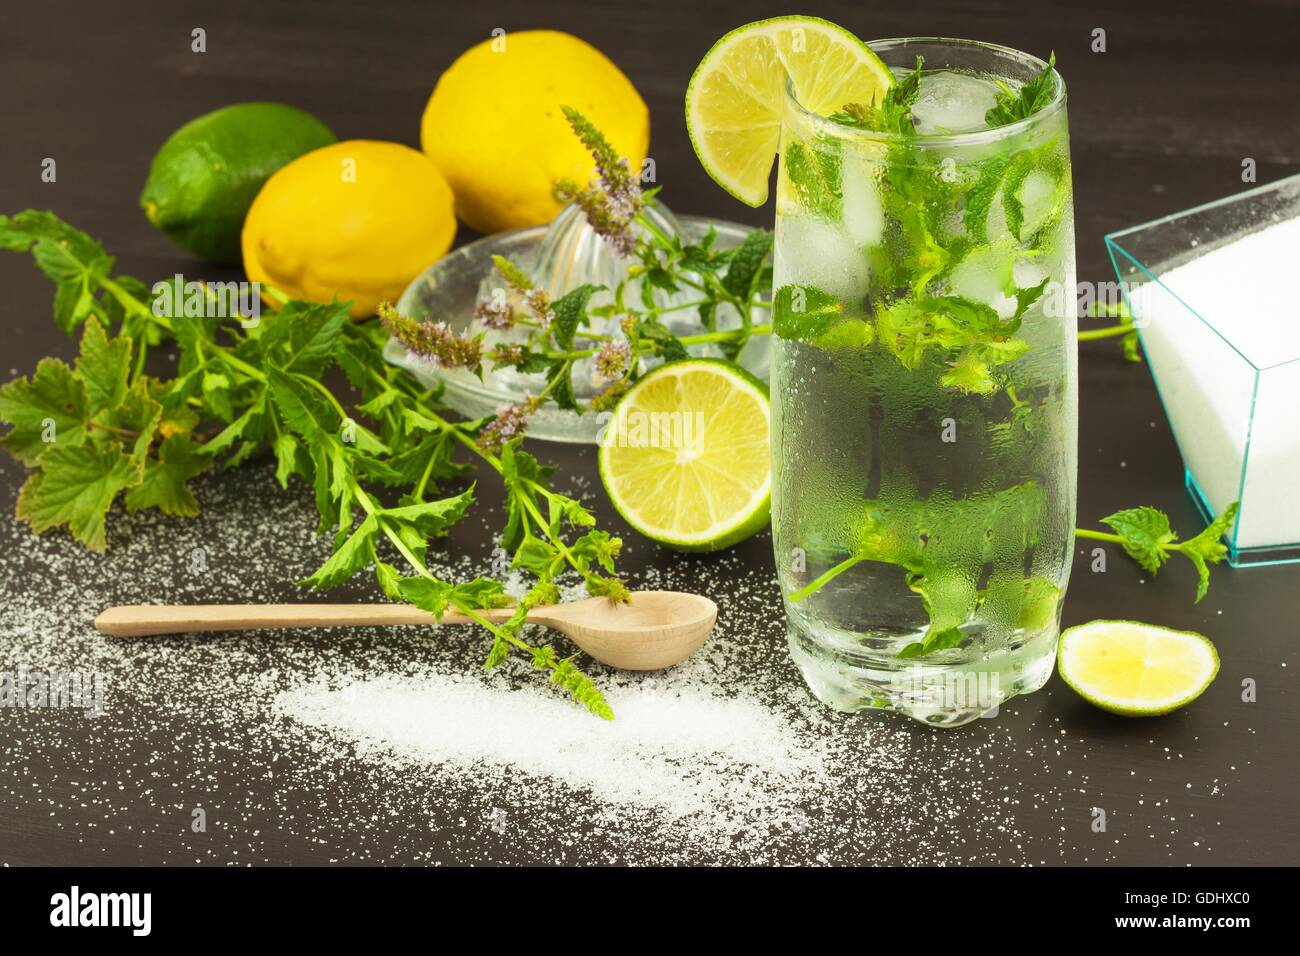 Homemade lemonade with fresh lemon and mint. Cool, refreshing dip in the hot summer. - Stock Image